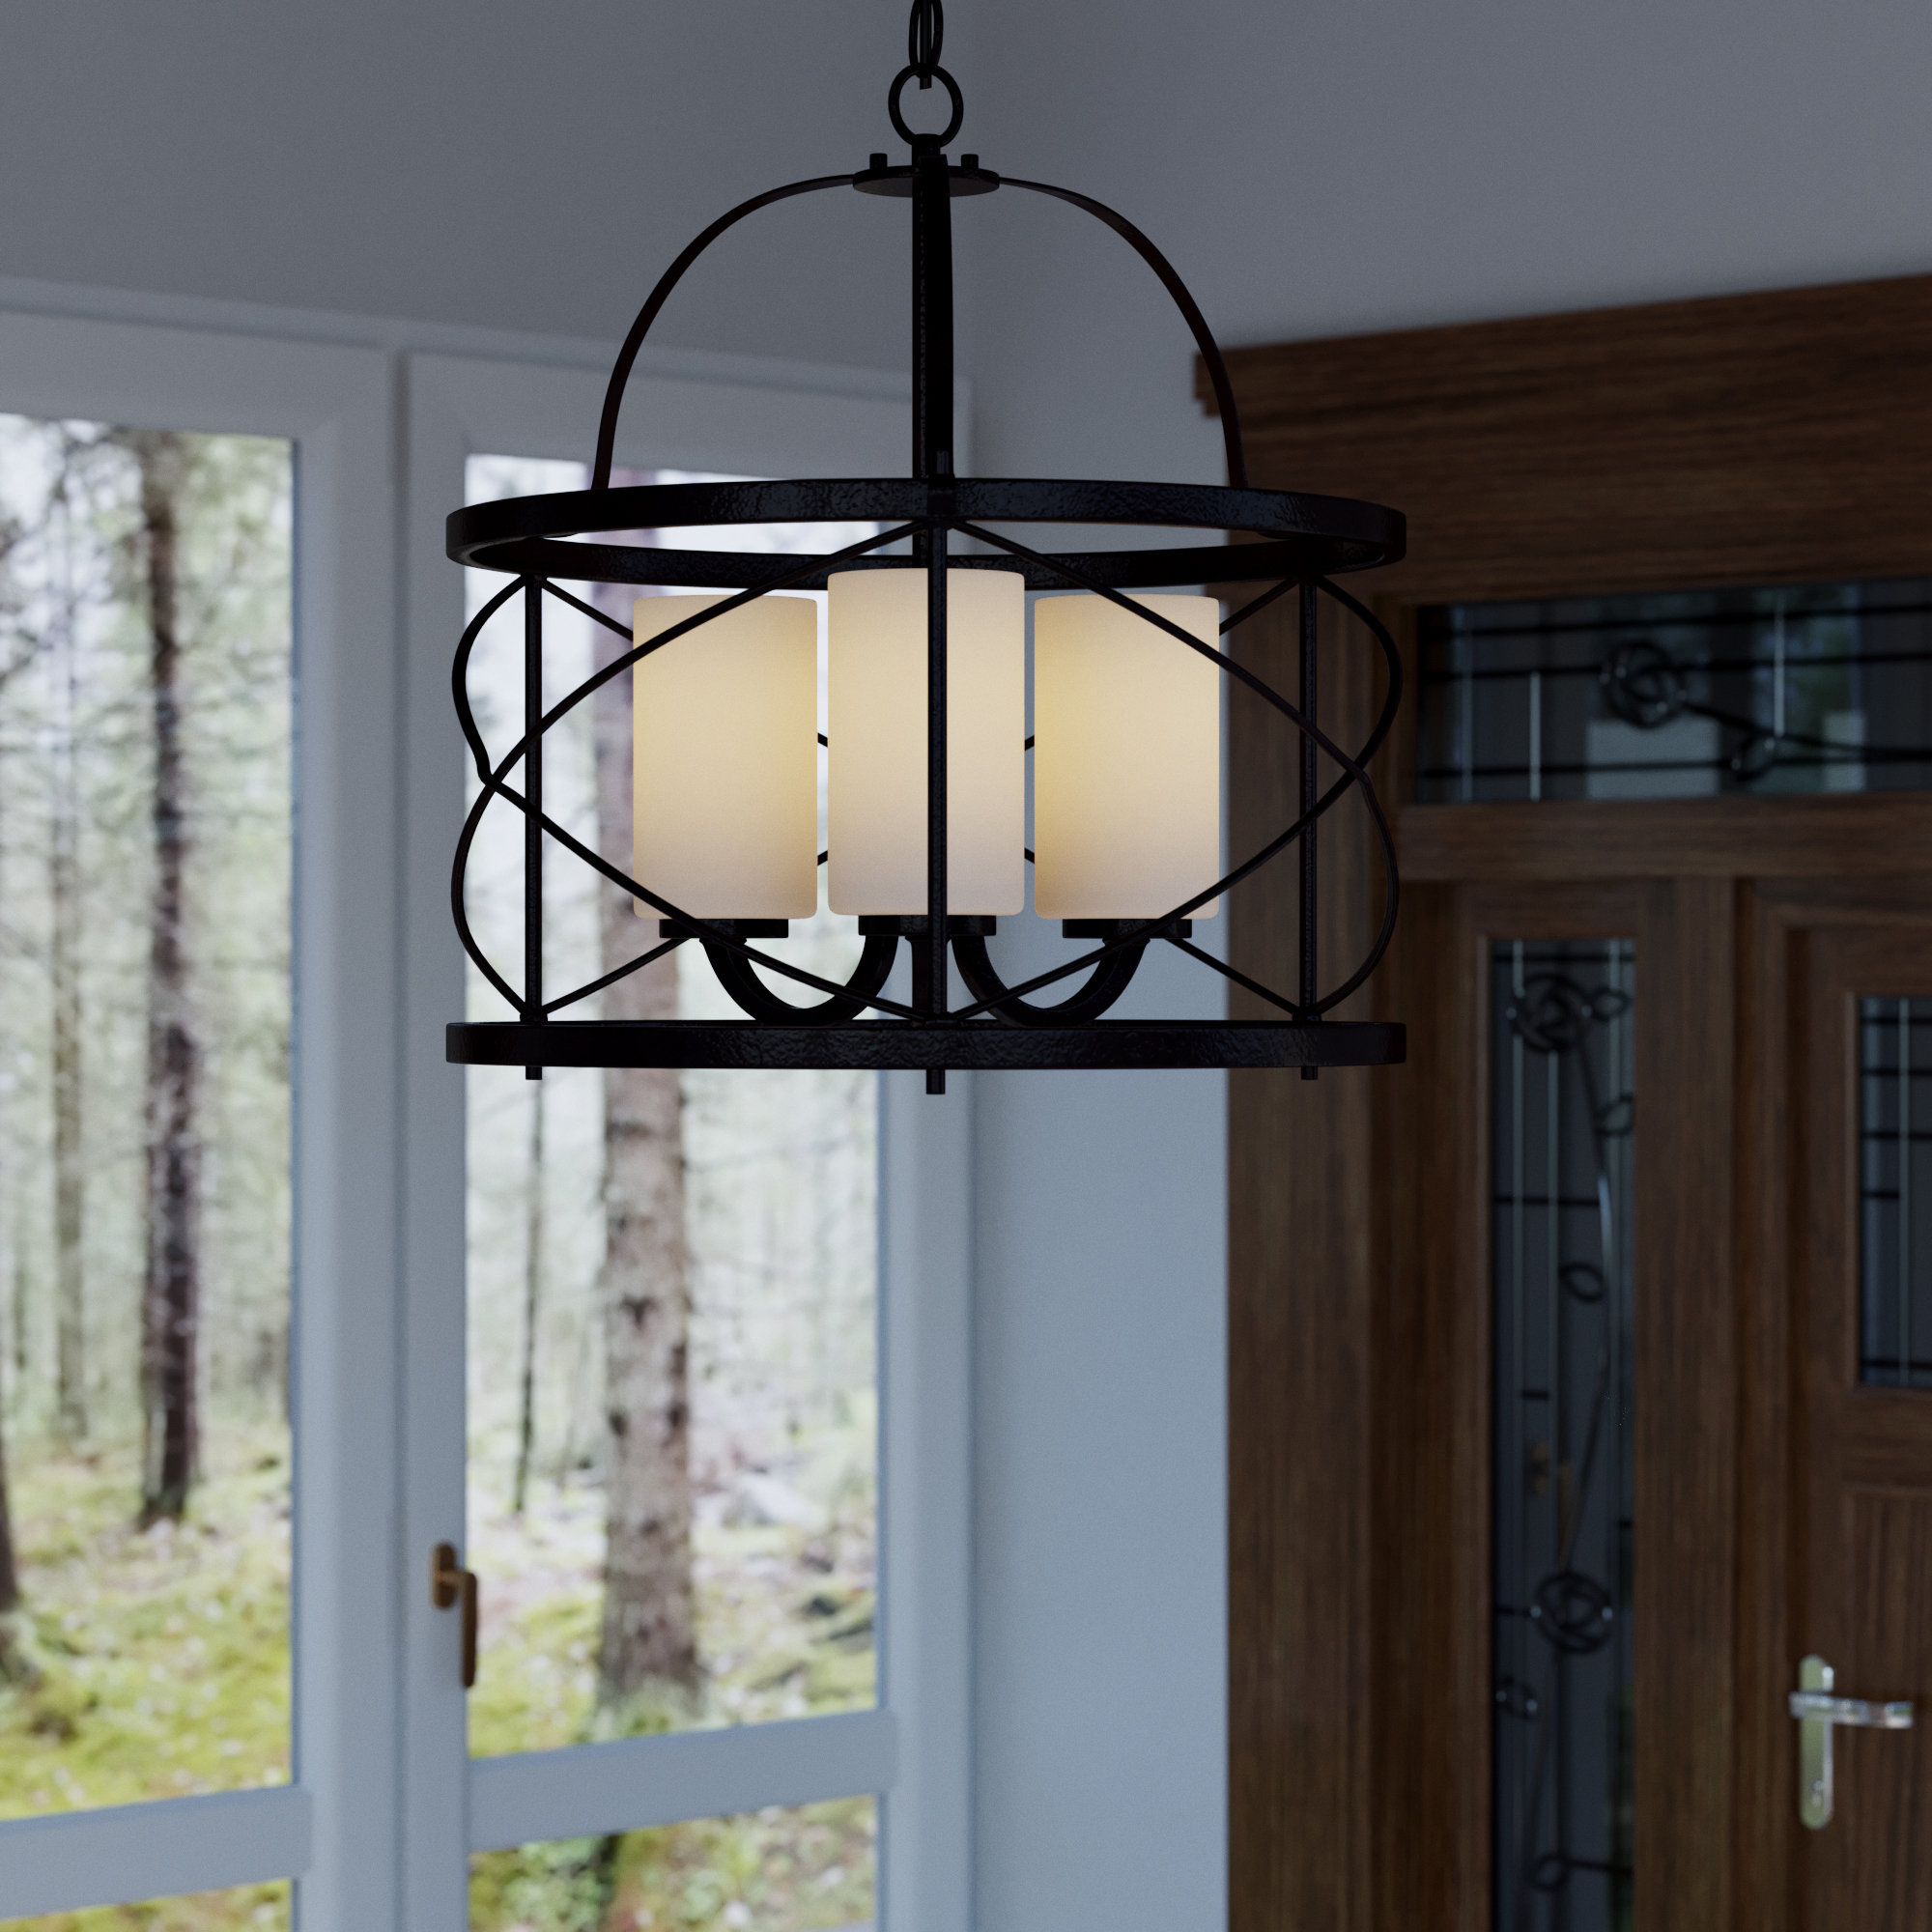 Farrier 3 Light Lantern Drum Pendants Throughout 2020 Farrier 3 Light Lantern Pendant (View 8 of 20)